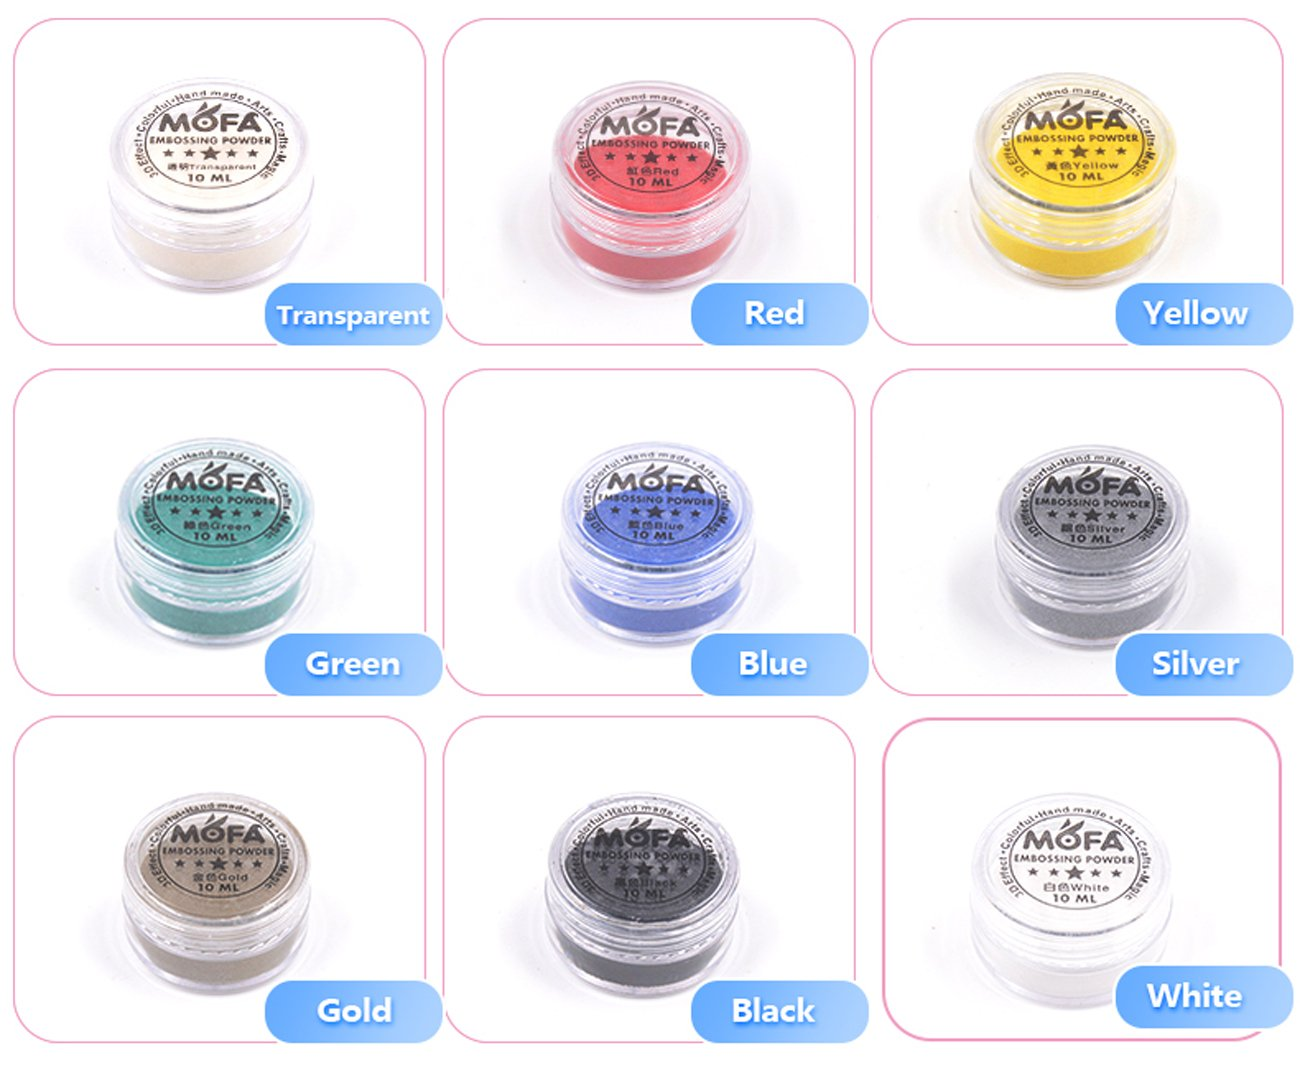 mofa Embossing Powder 9 Piece of Set,9 Tin Colorful Super Fine Embossing Powder,Including Black,Yellow,Green,White,Blue,Red,Silver,Gold and Transparent (Large)